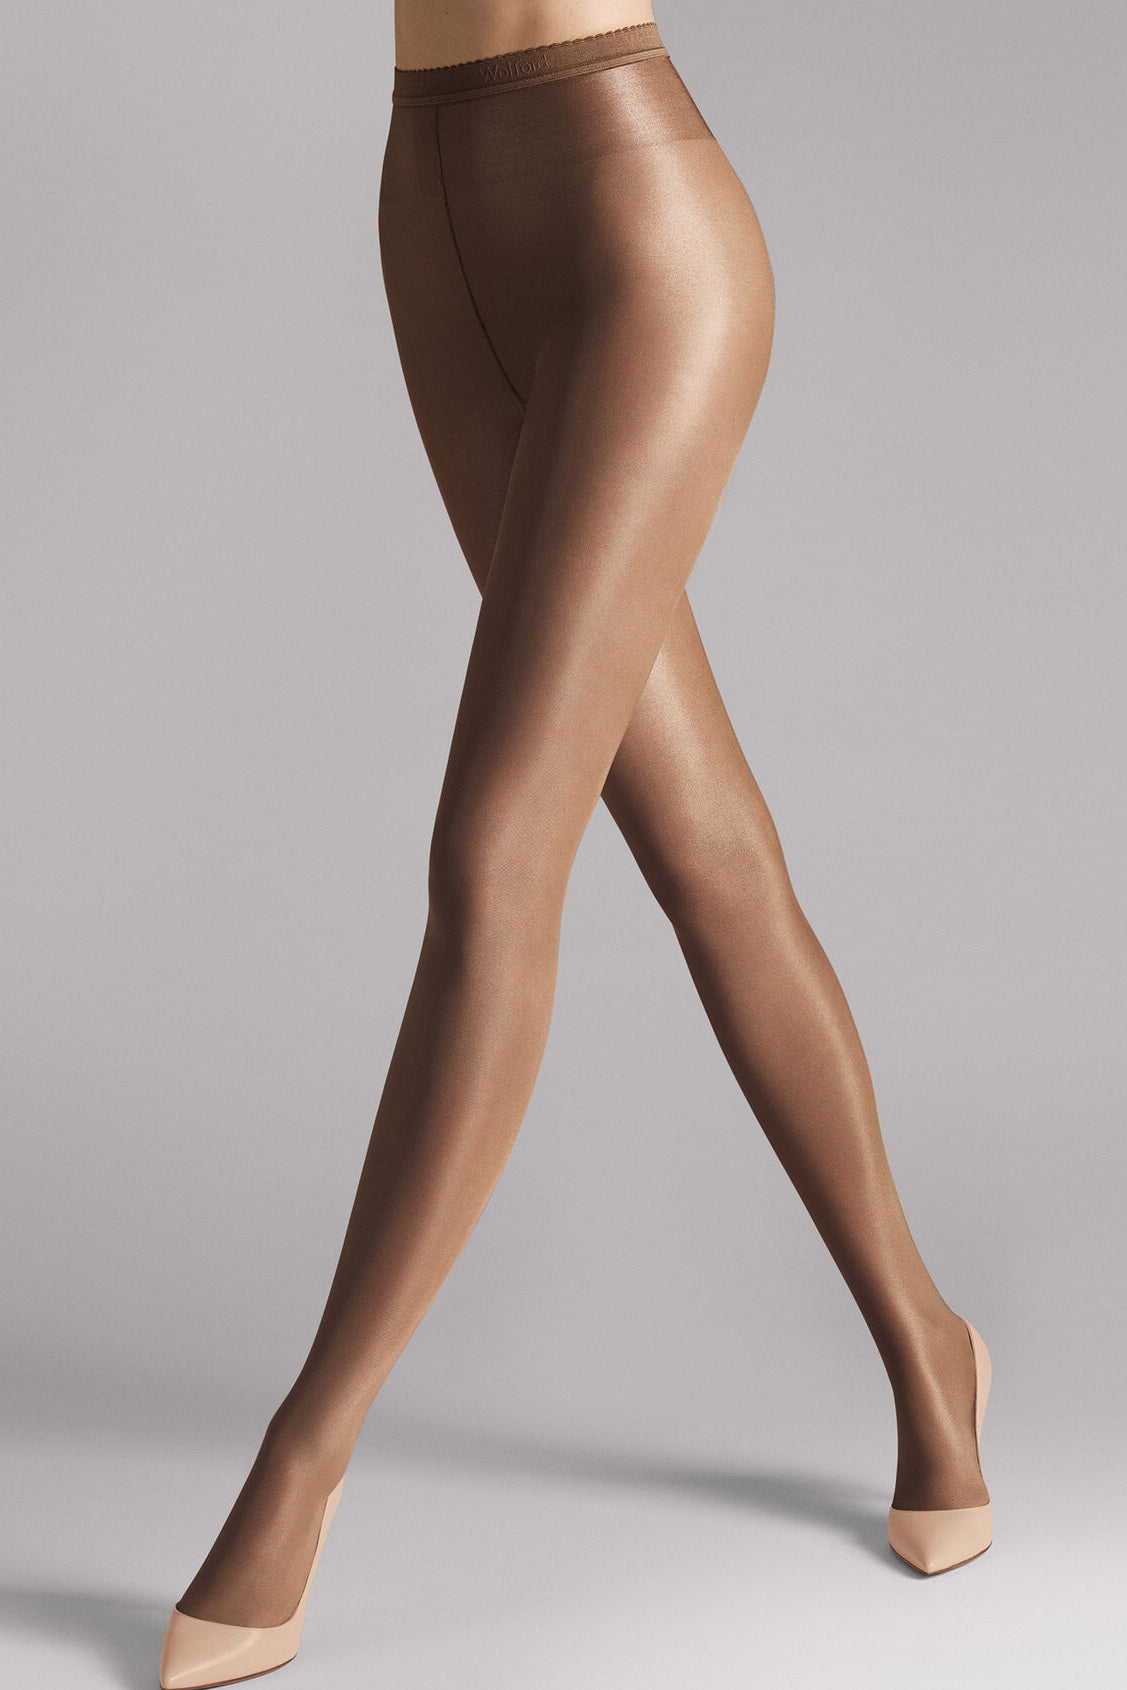 Wolford Neon 40 Tights in Cocoa - Vert & Vogue